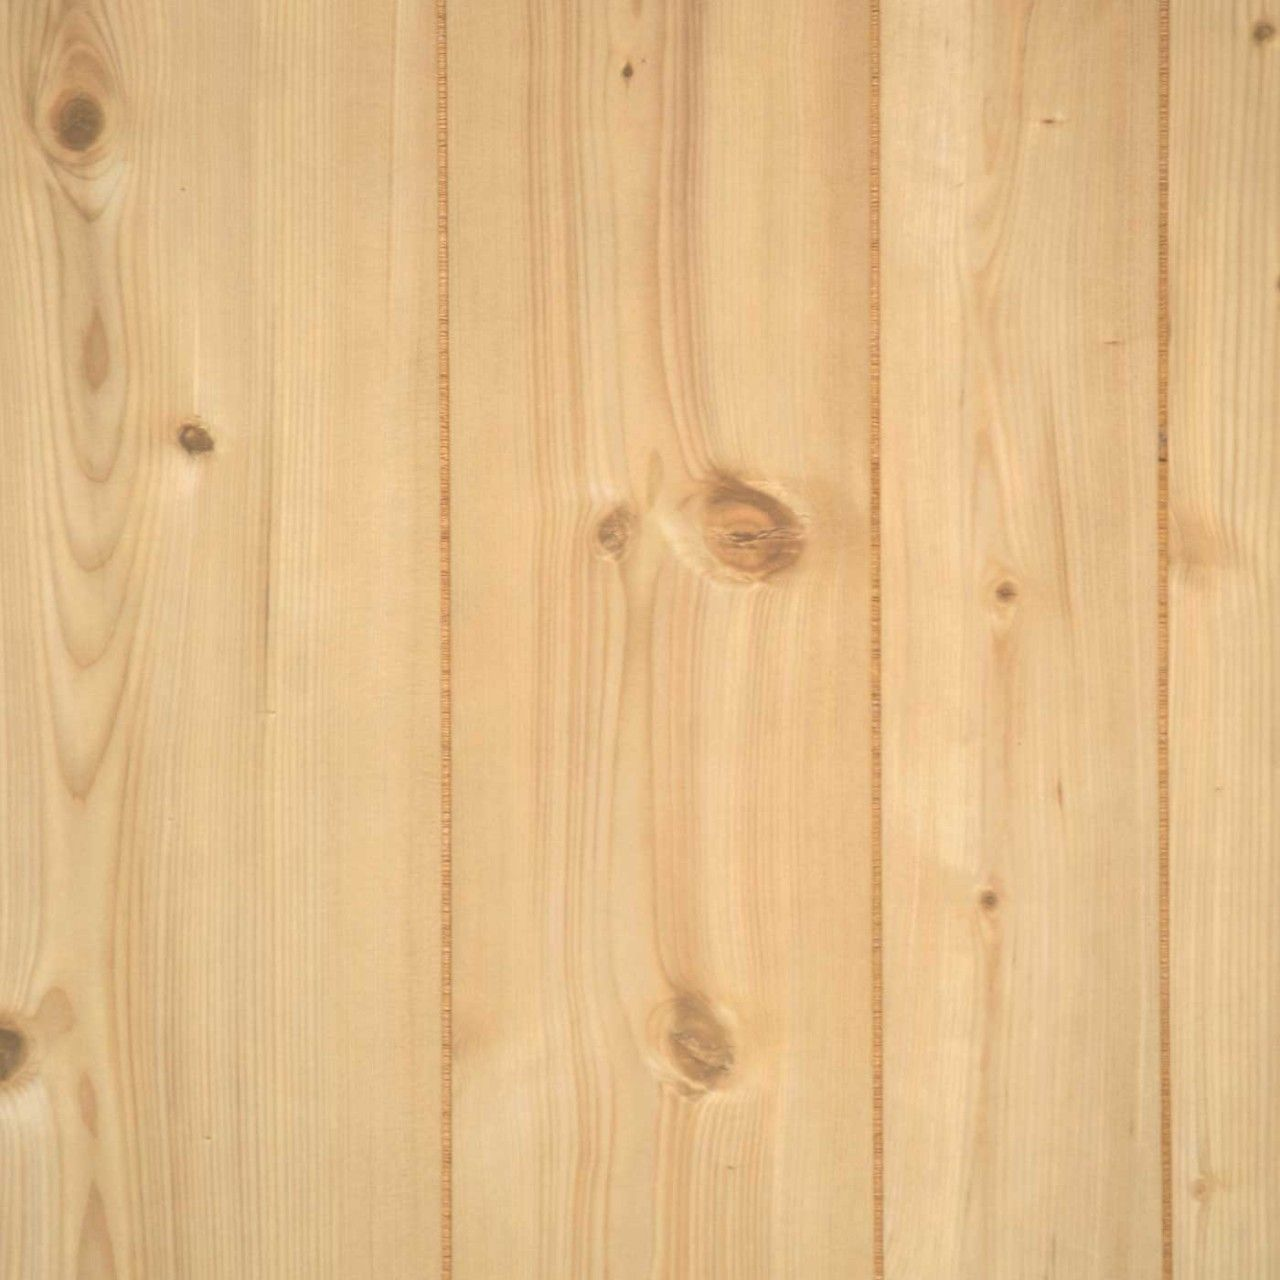 Rustic Pine Plywood Paneling 9-groove | Pinterest | Plywood panels